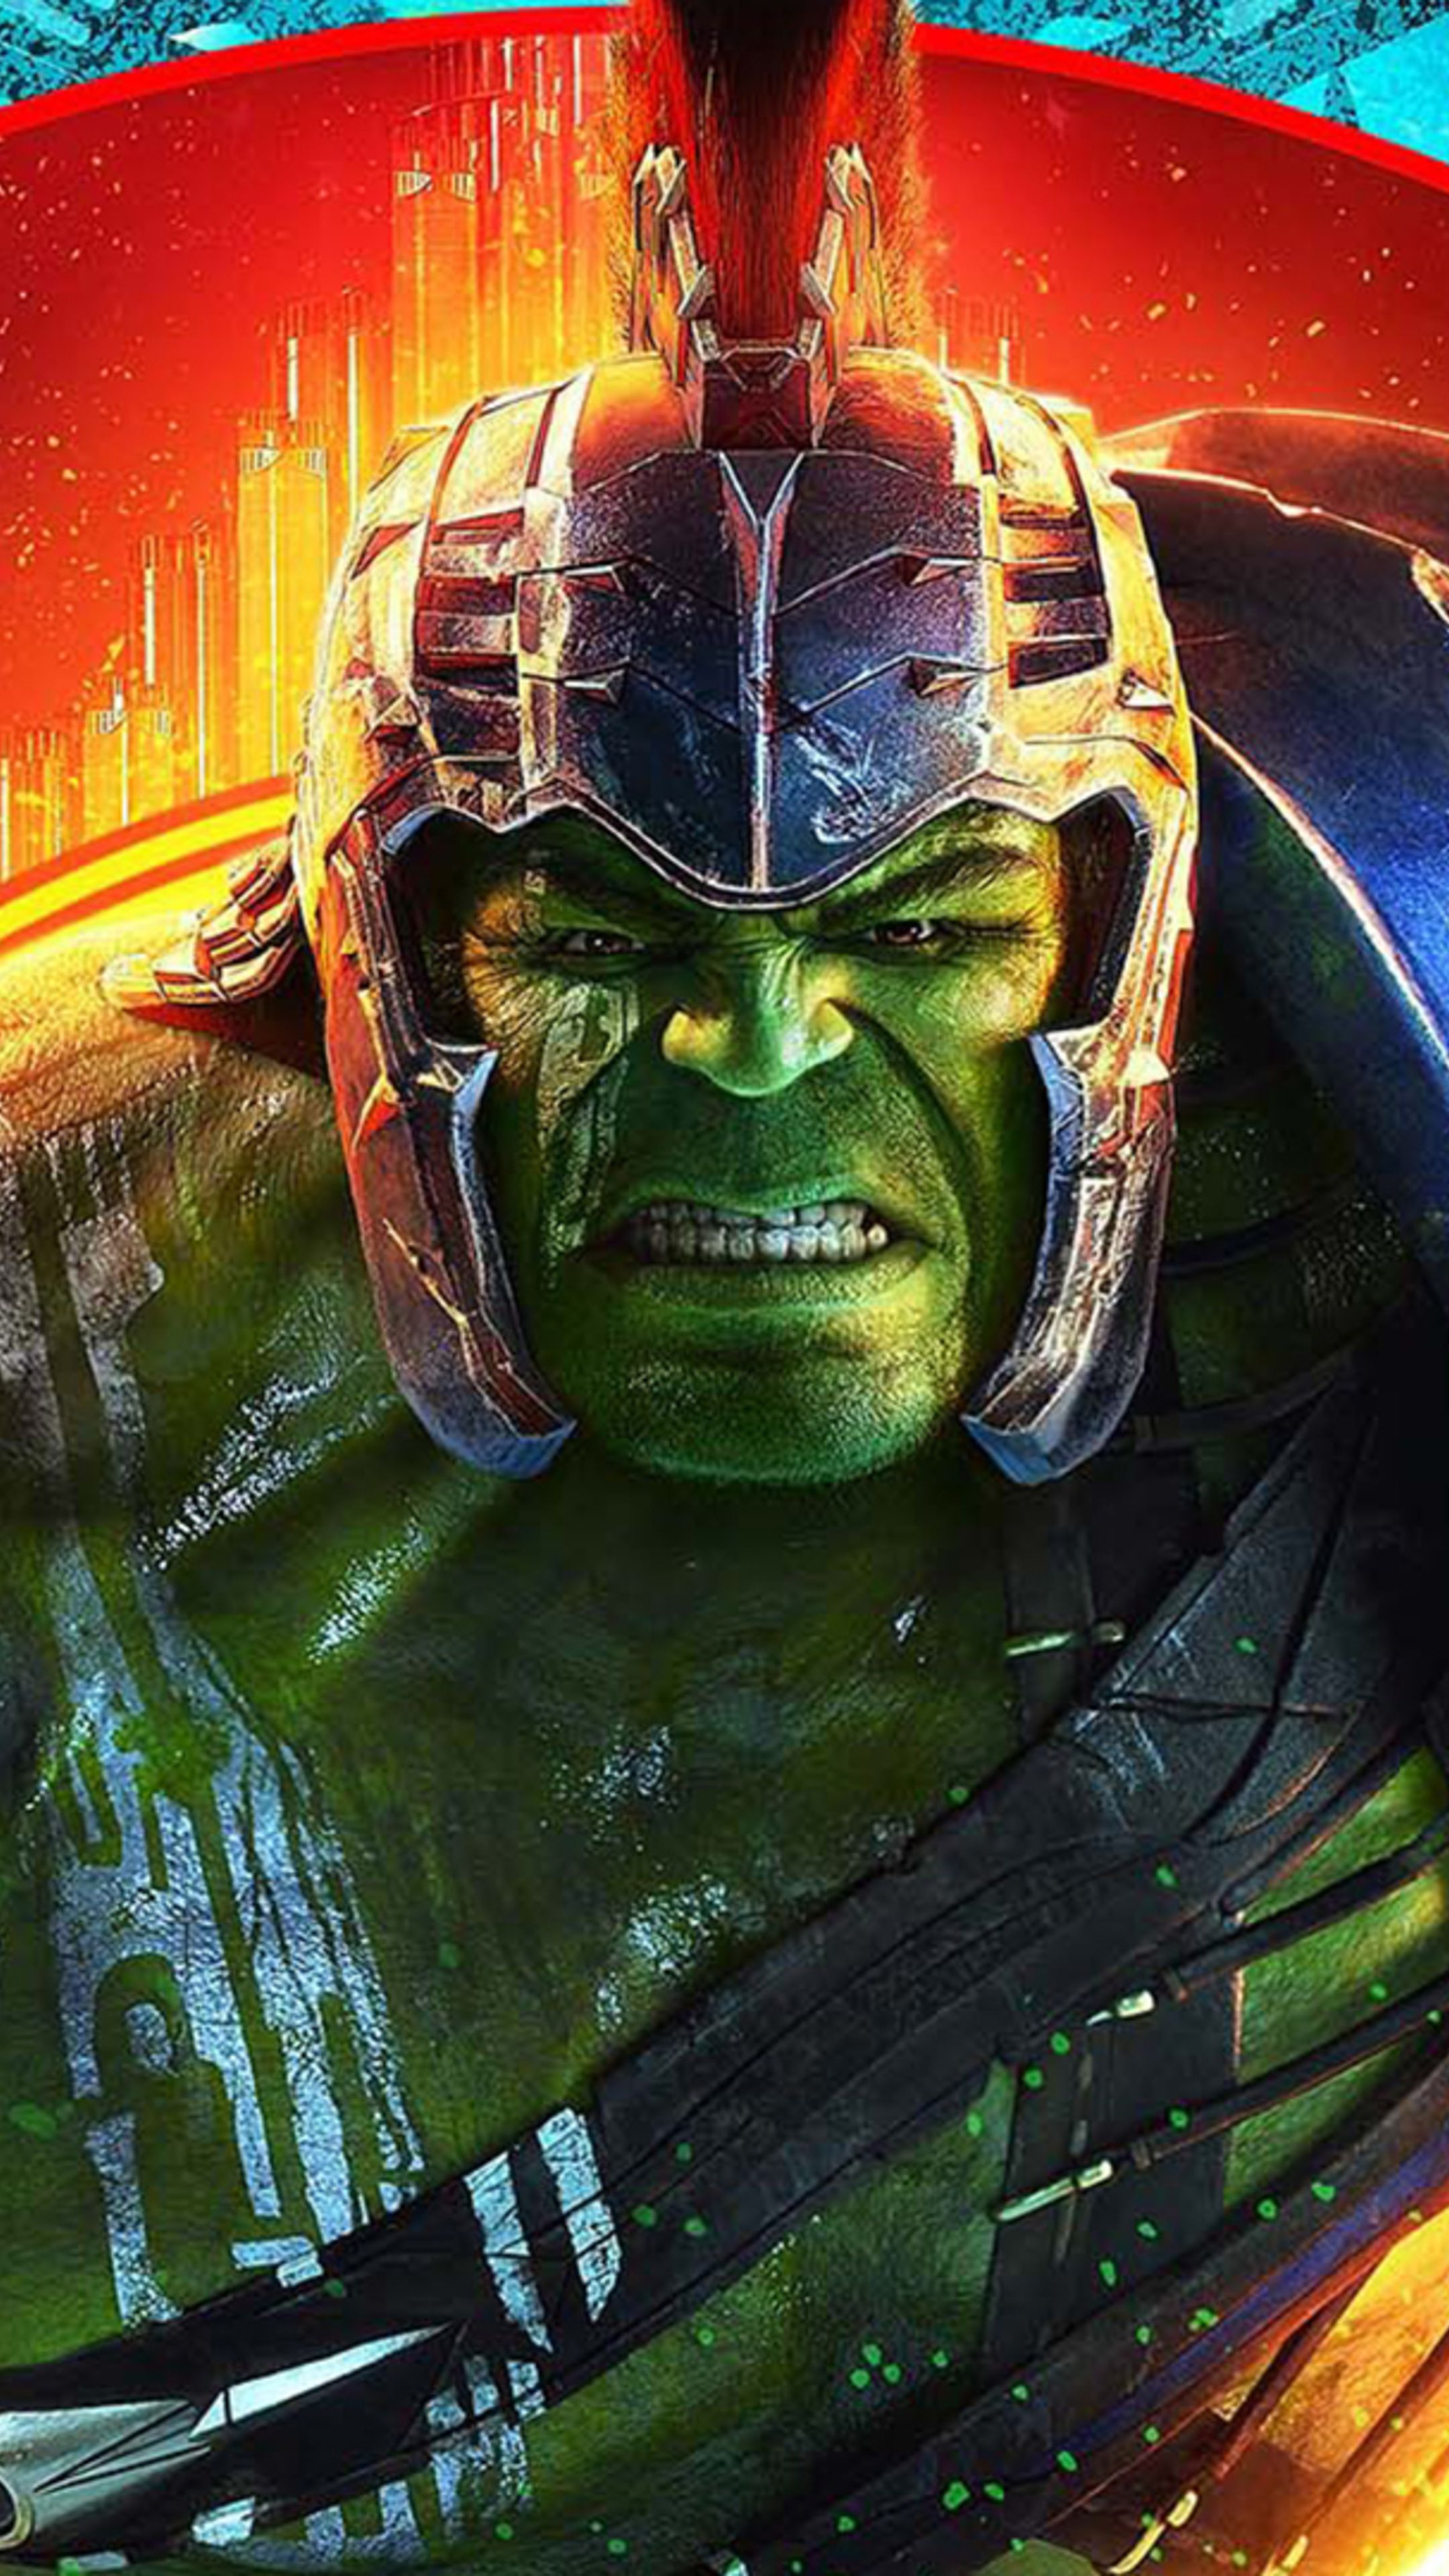 Thor Vs Hulk Ragnarok Wallpaper Background Hulk Artwork Hulk Art Avengers Wallpaper